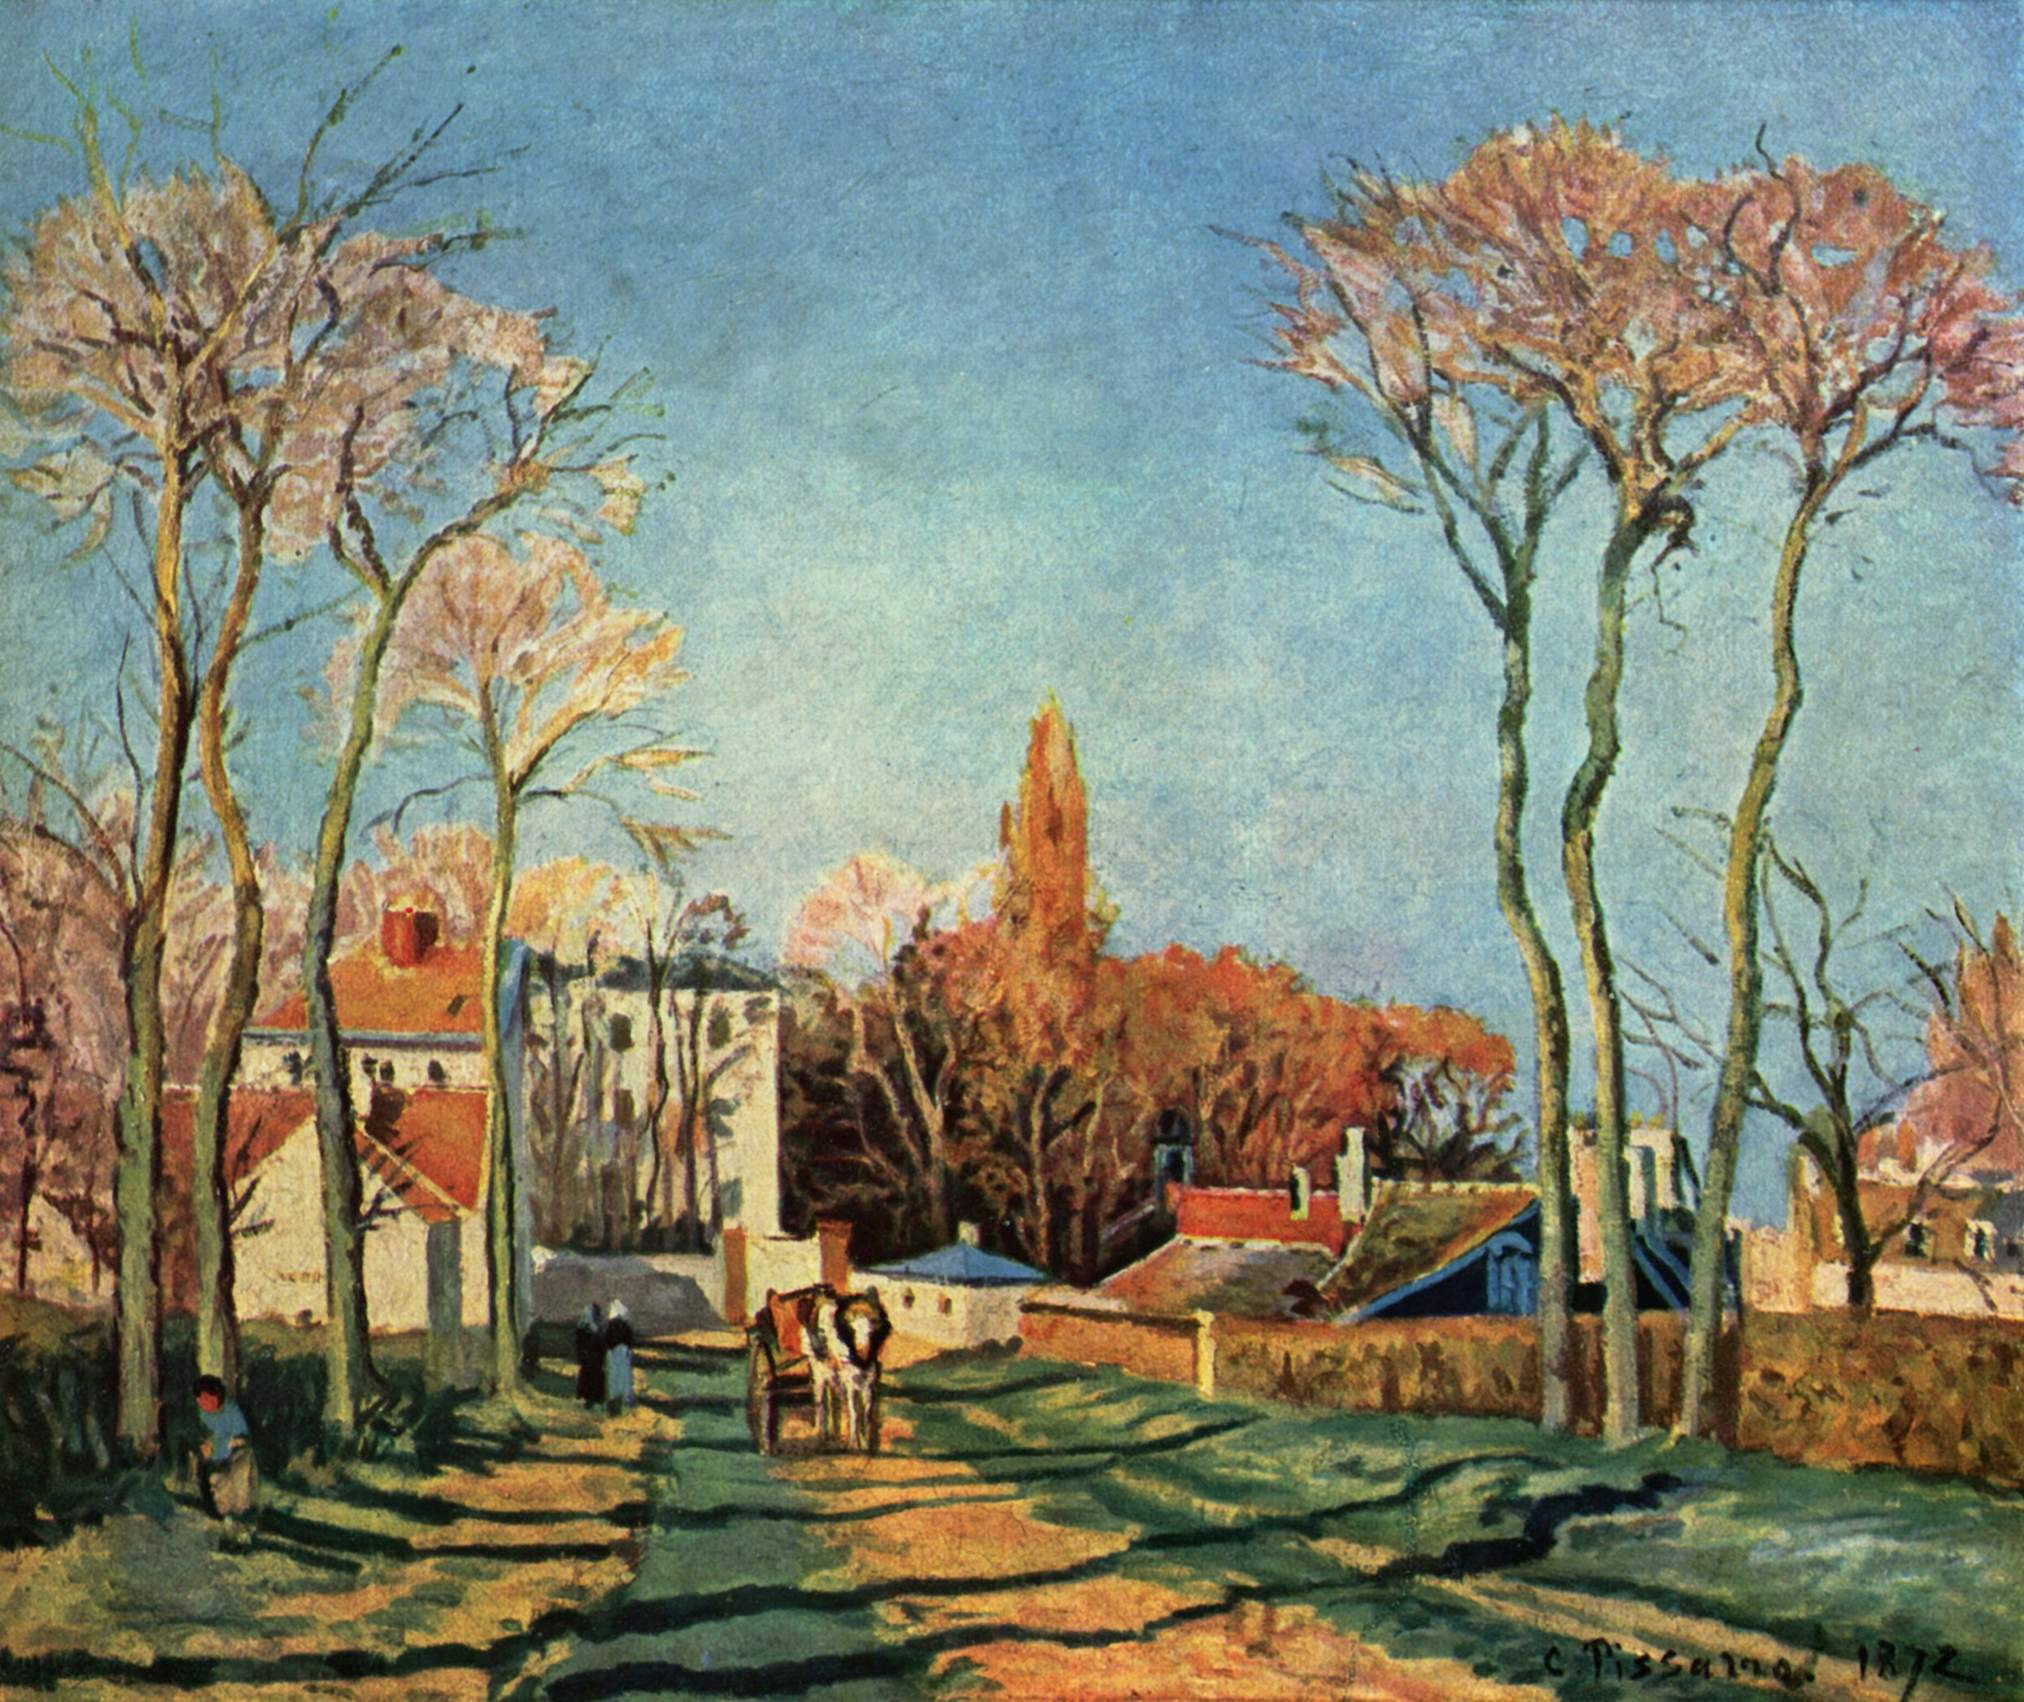 Camille Pissarro Most Famous Paintings 1